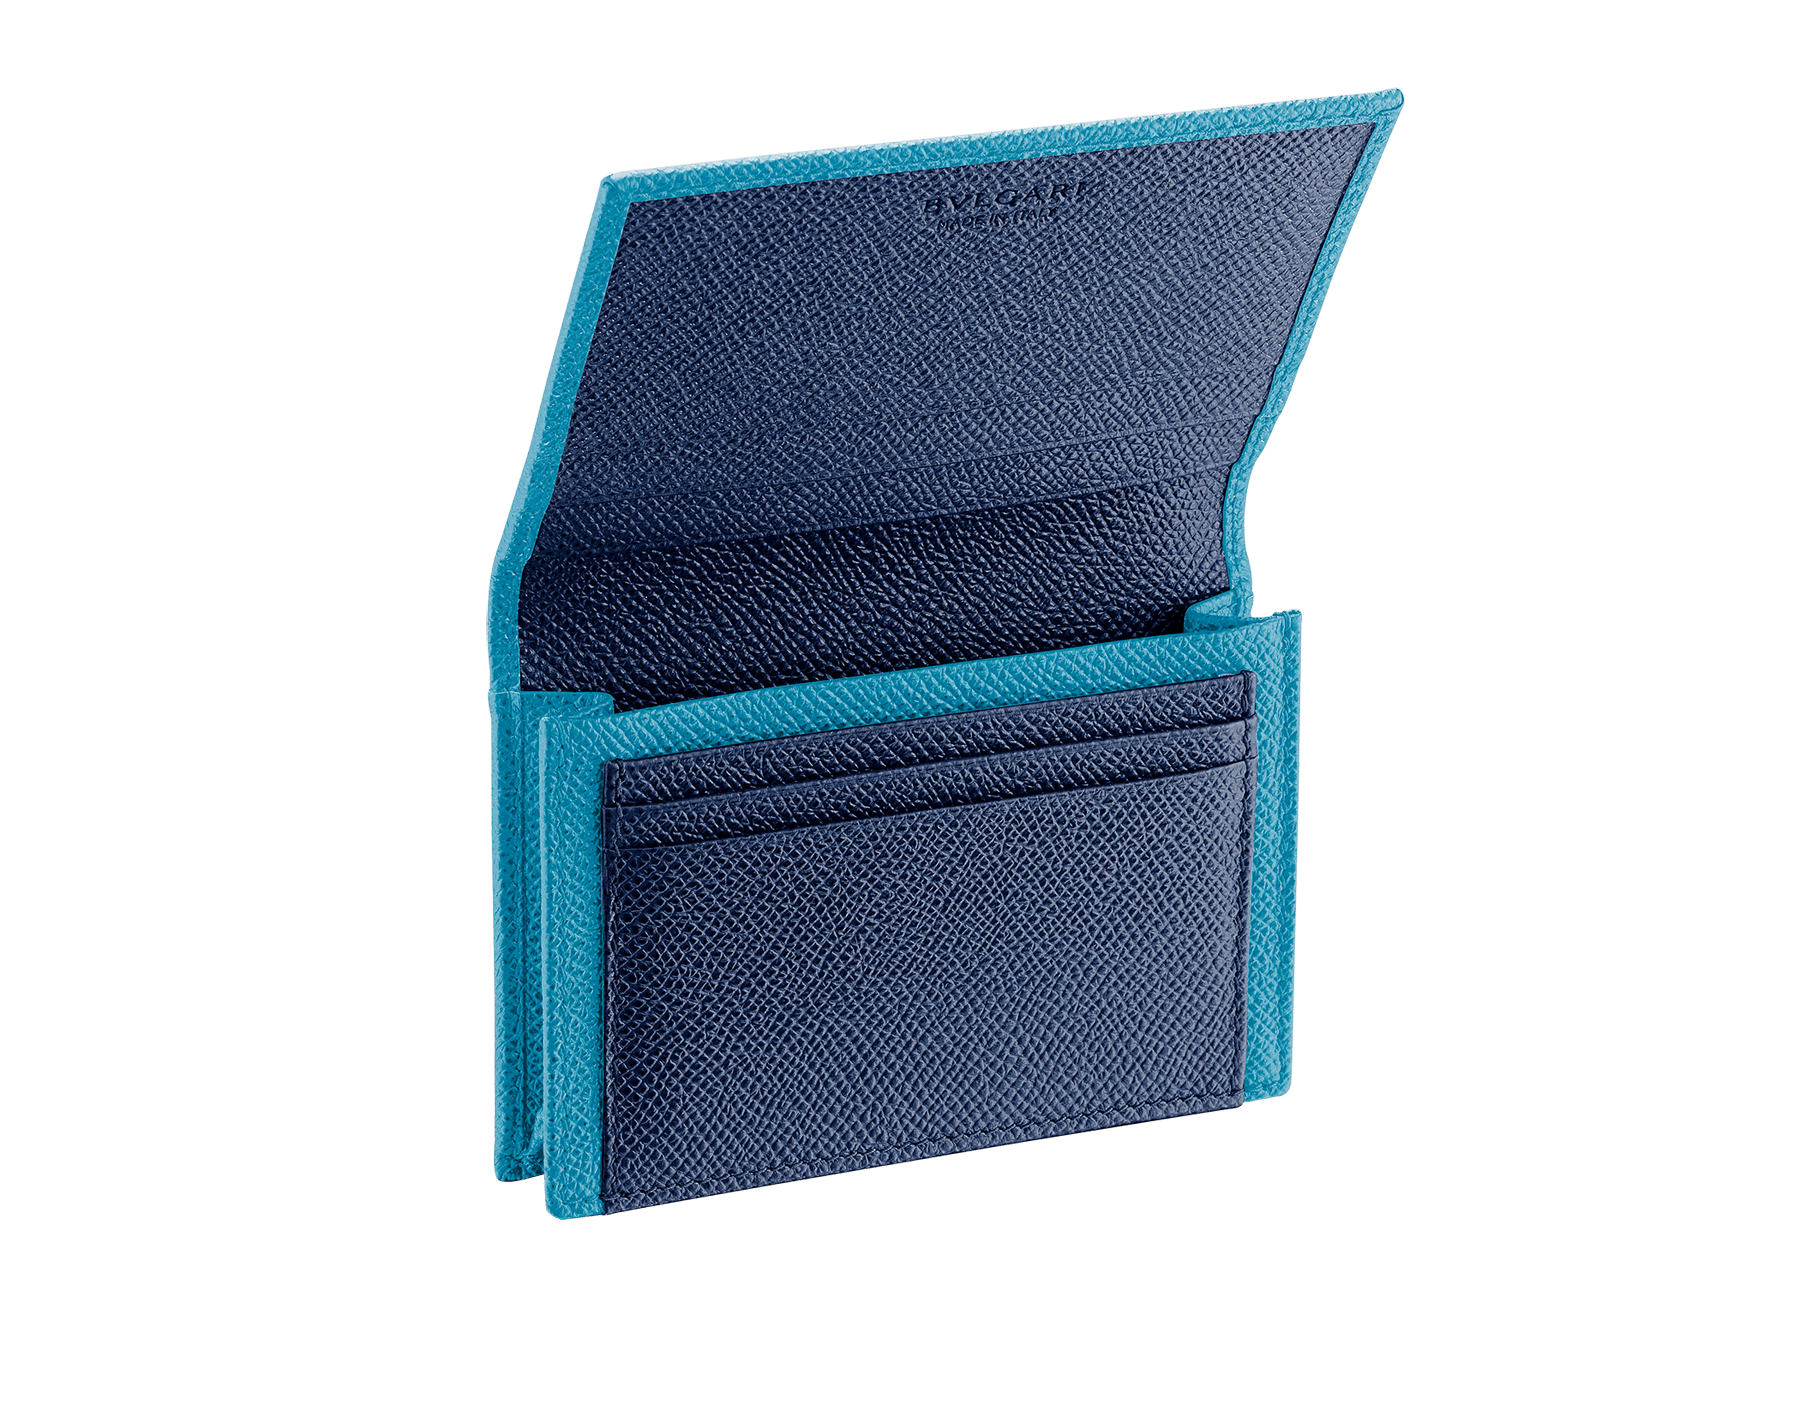 """""""BVLGARI BVLGARI"""" business card holder in capri turquoise and royal sapphire grain calf leather, with brass palladium plated logo décor. BBM-BC-HOLD-SIMPLEa image 2"""